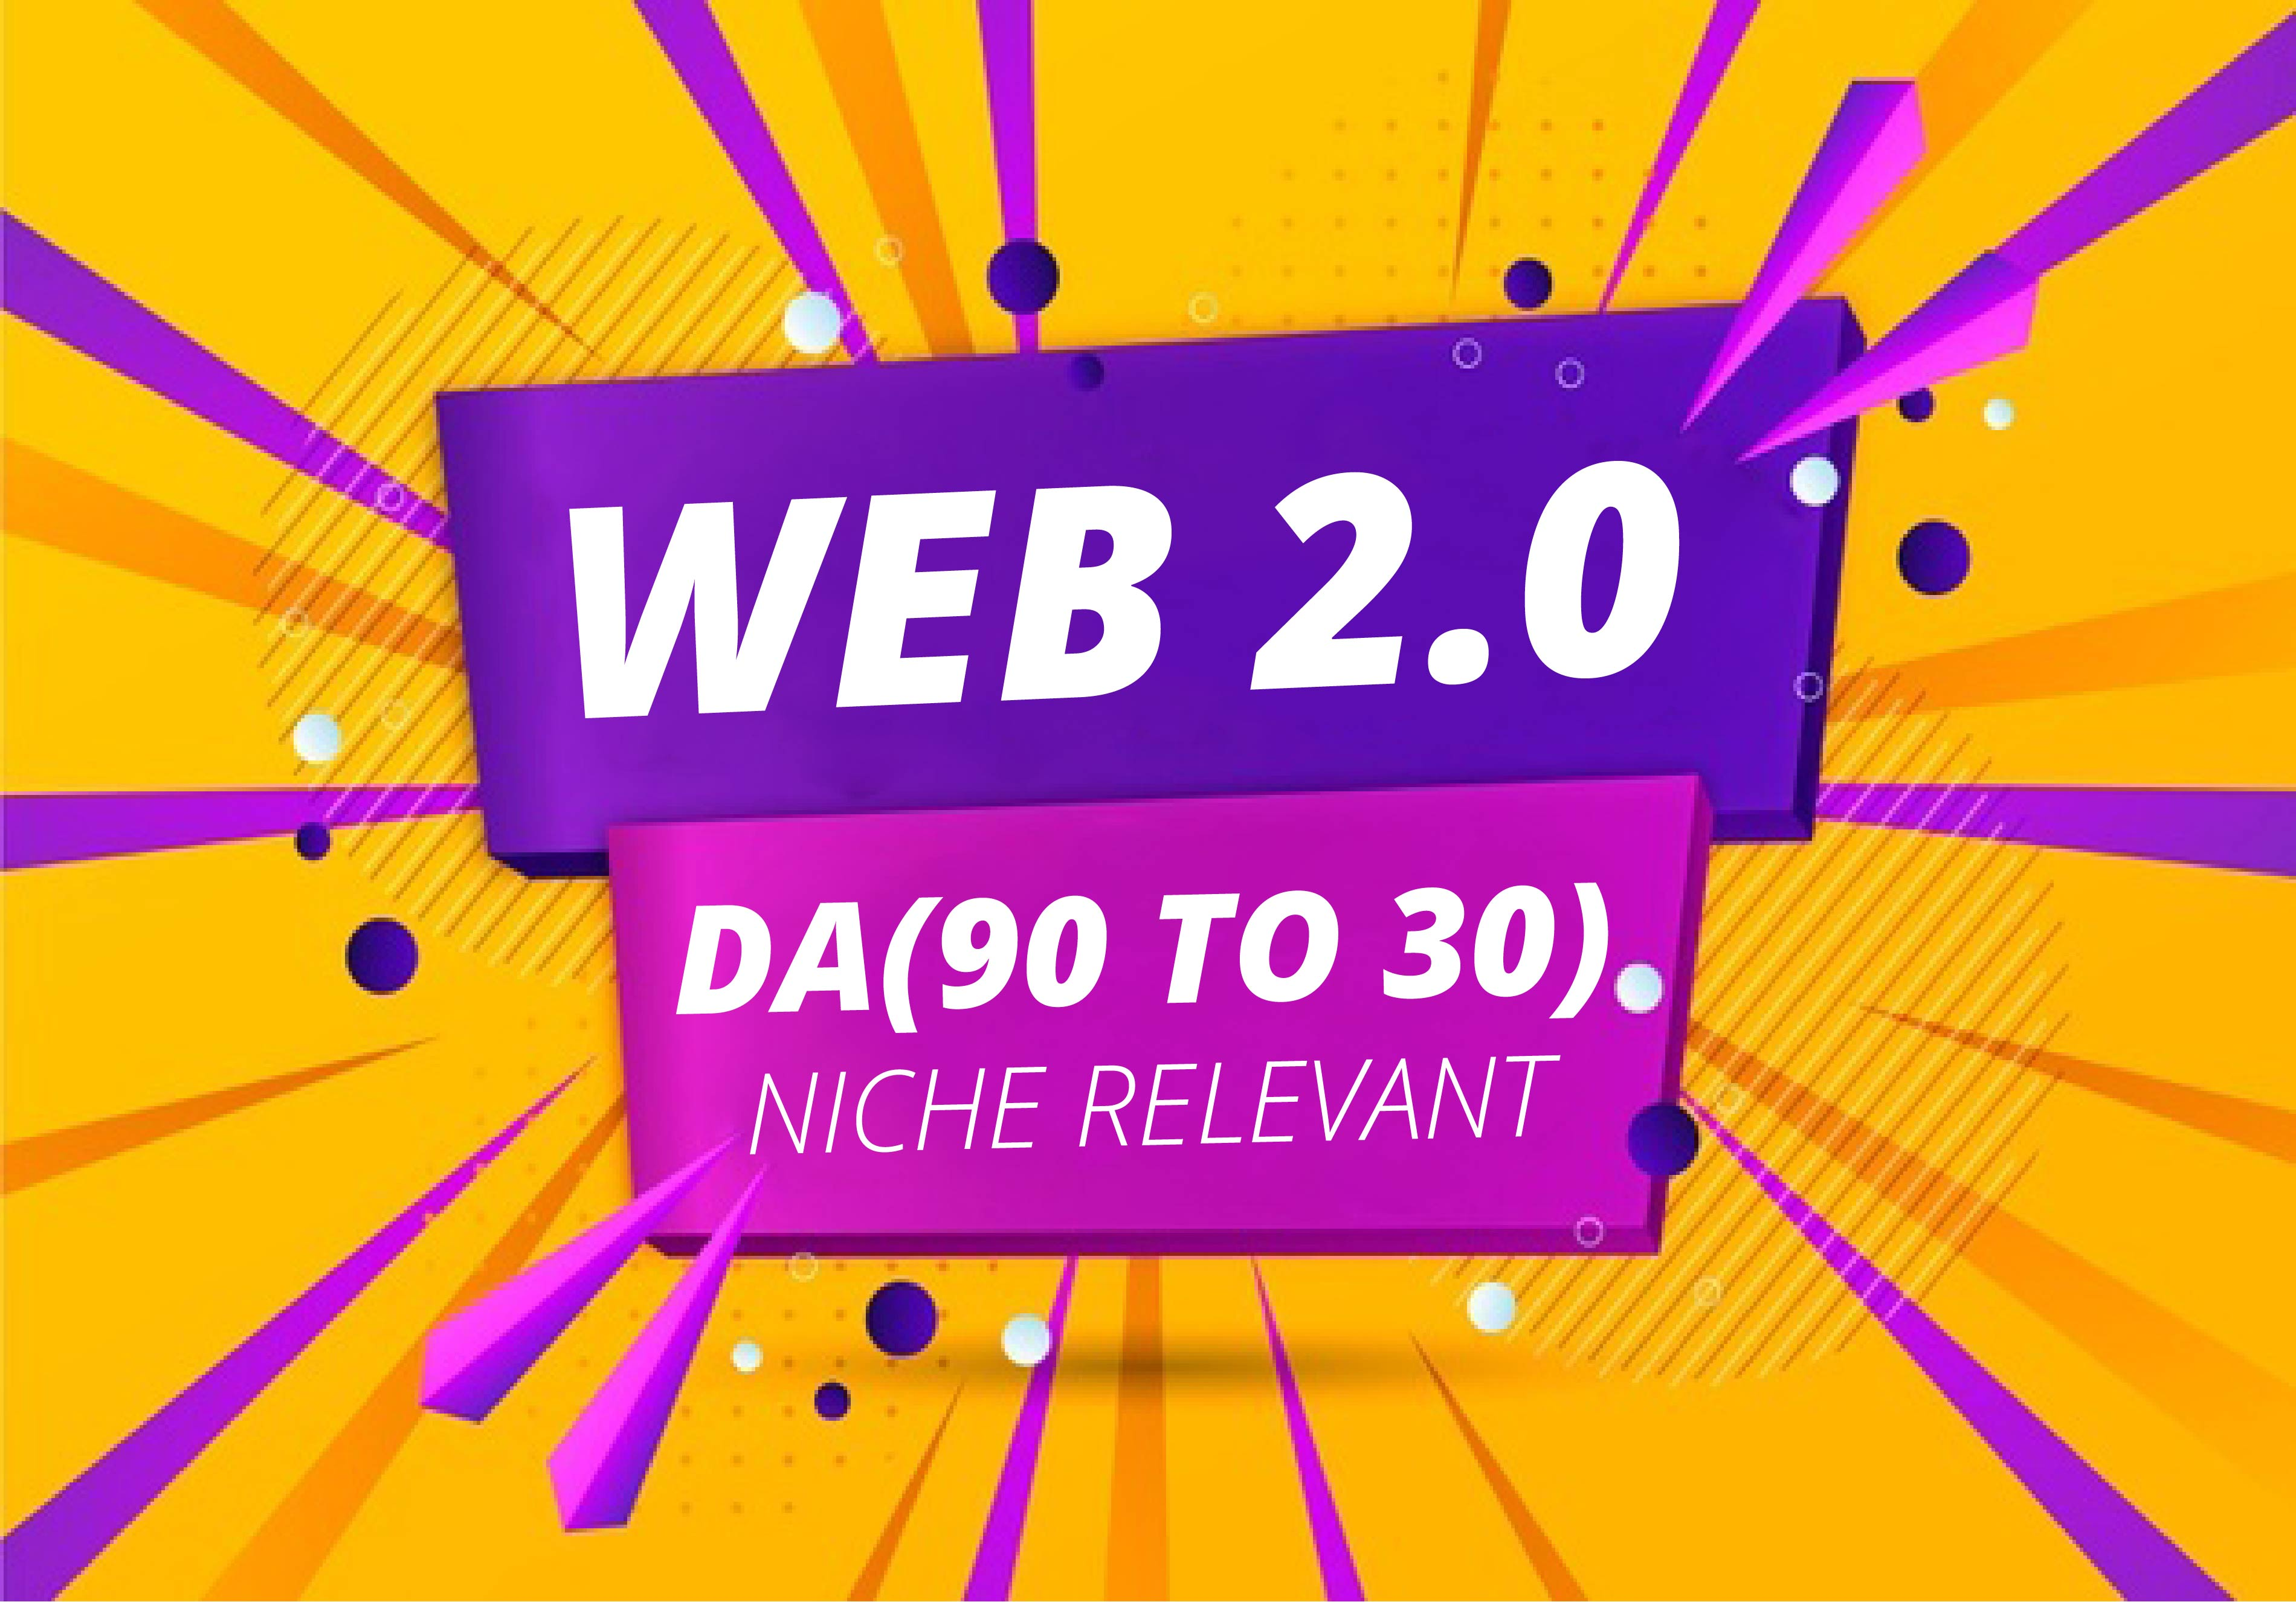 Get 100 web 2.0 backlinks from world wide sites